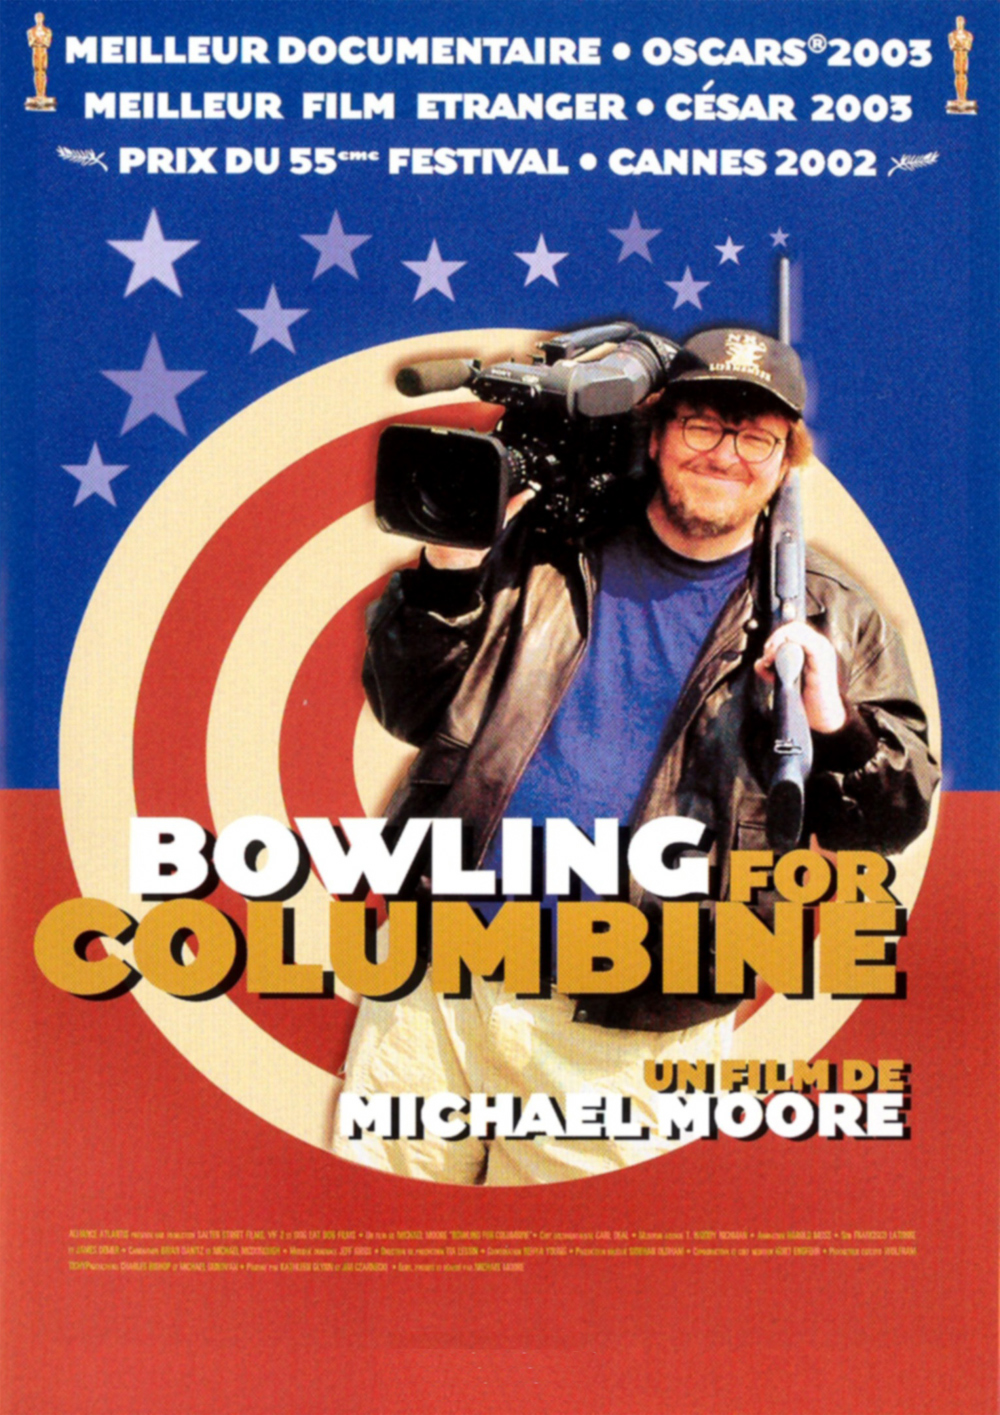 an analysis of the movie bowling for columbine by michael moore